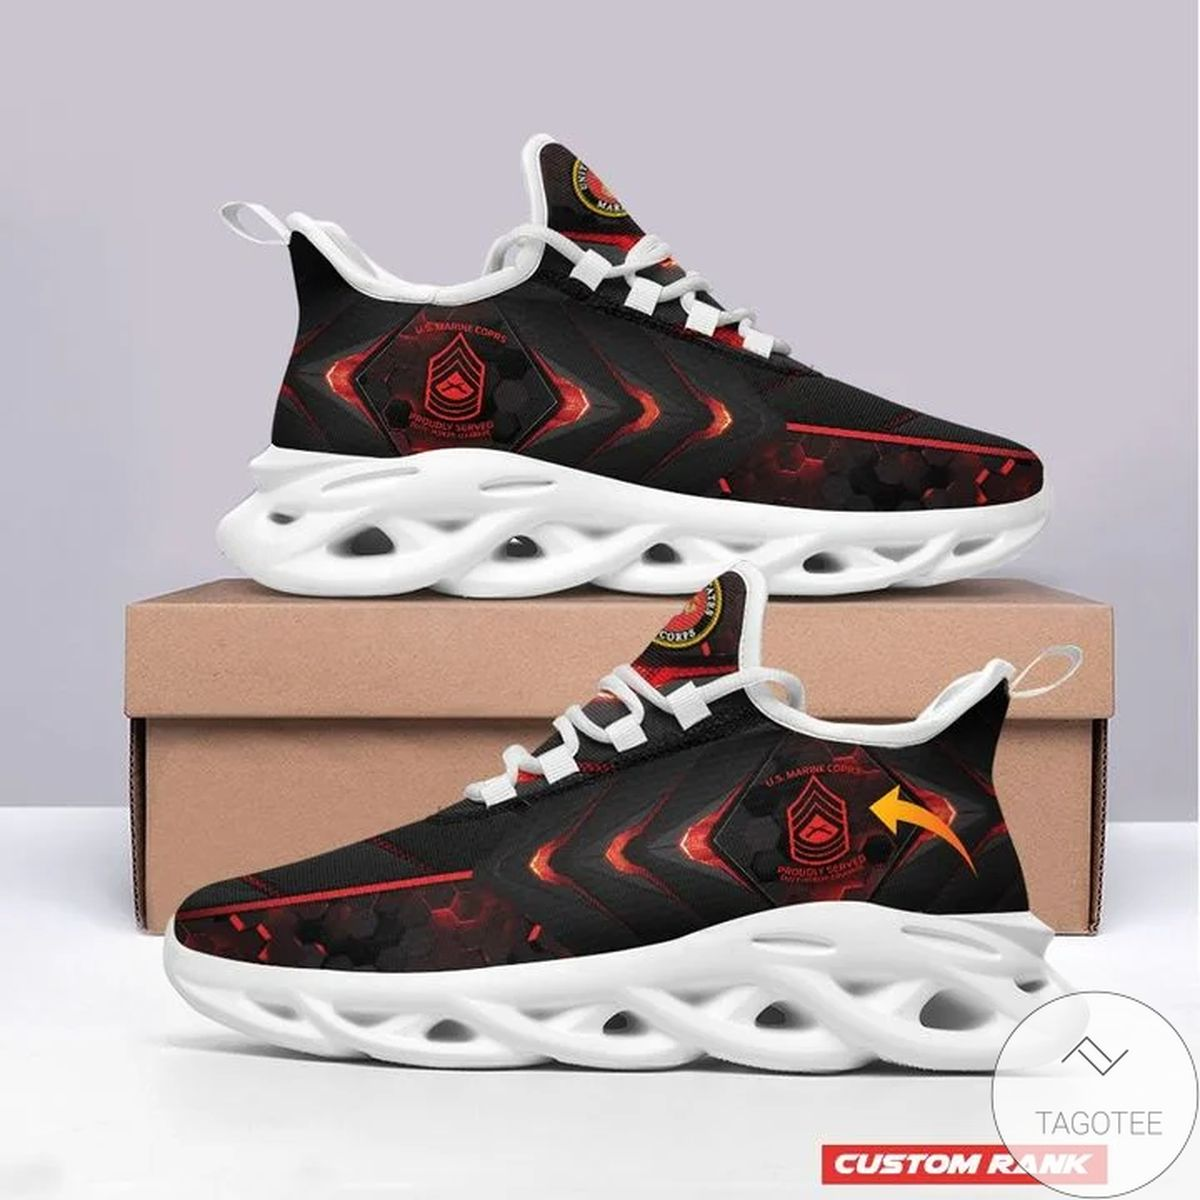 Personalized Customized Rank US Marine Sneaker Max Soul Shoes